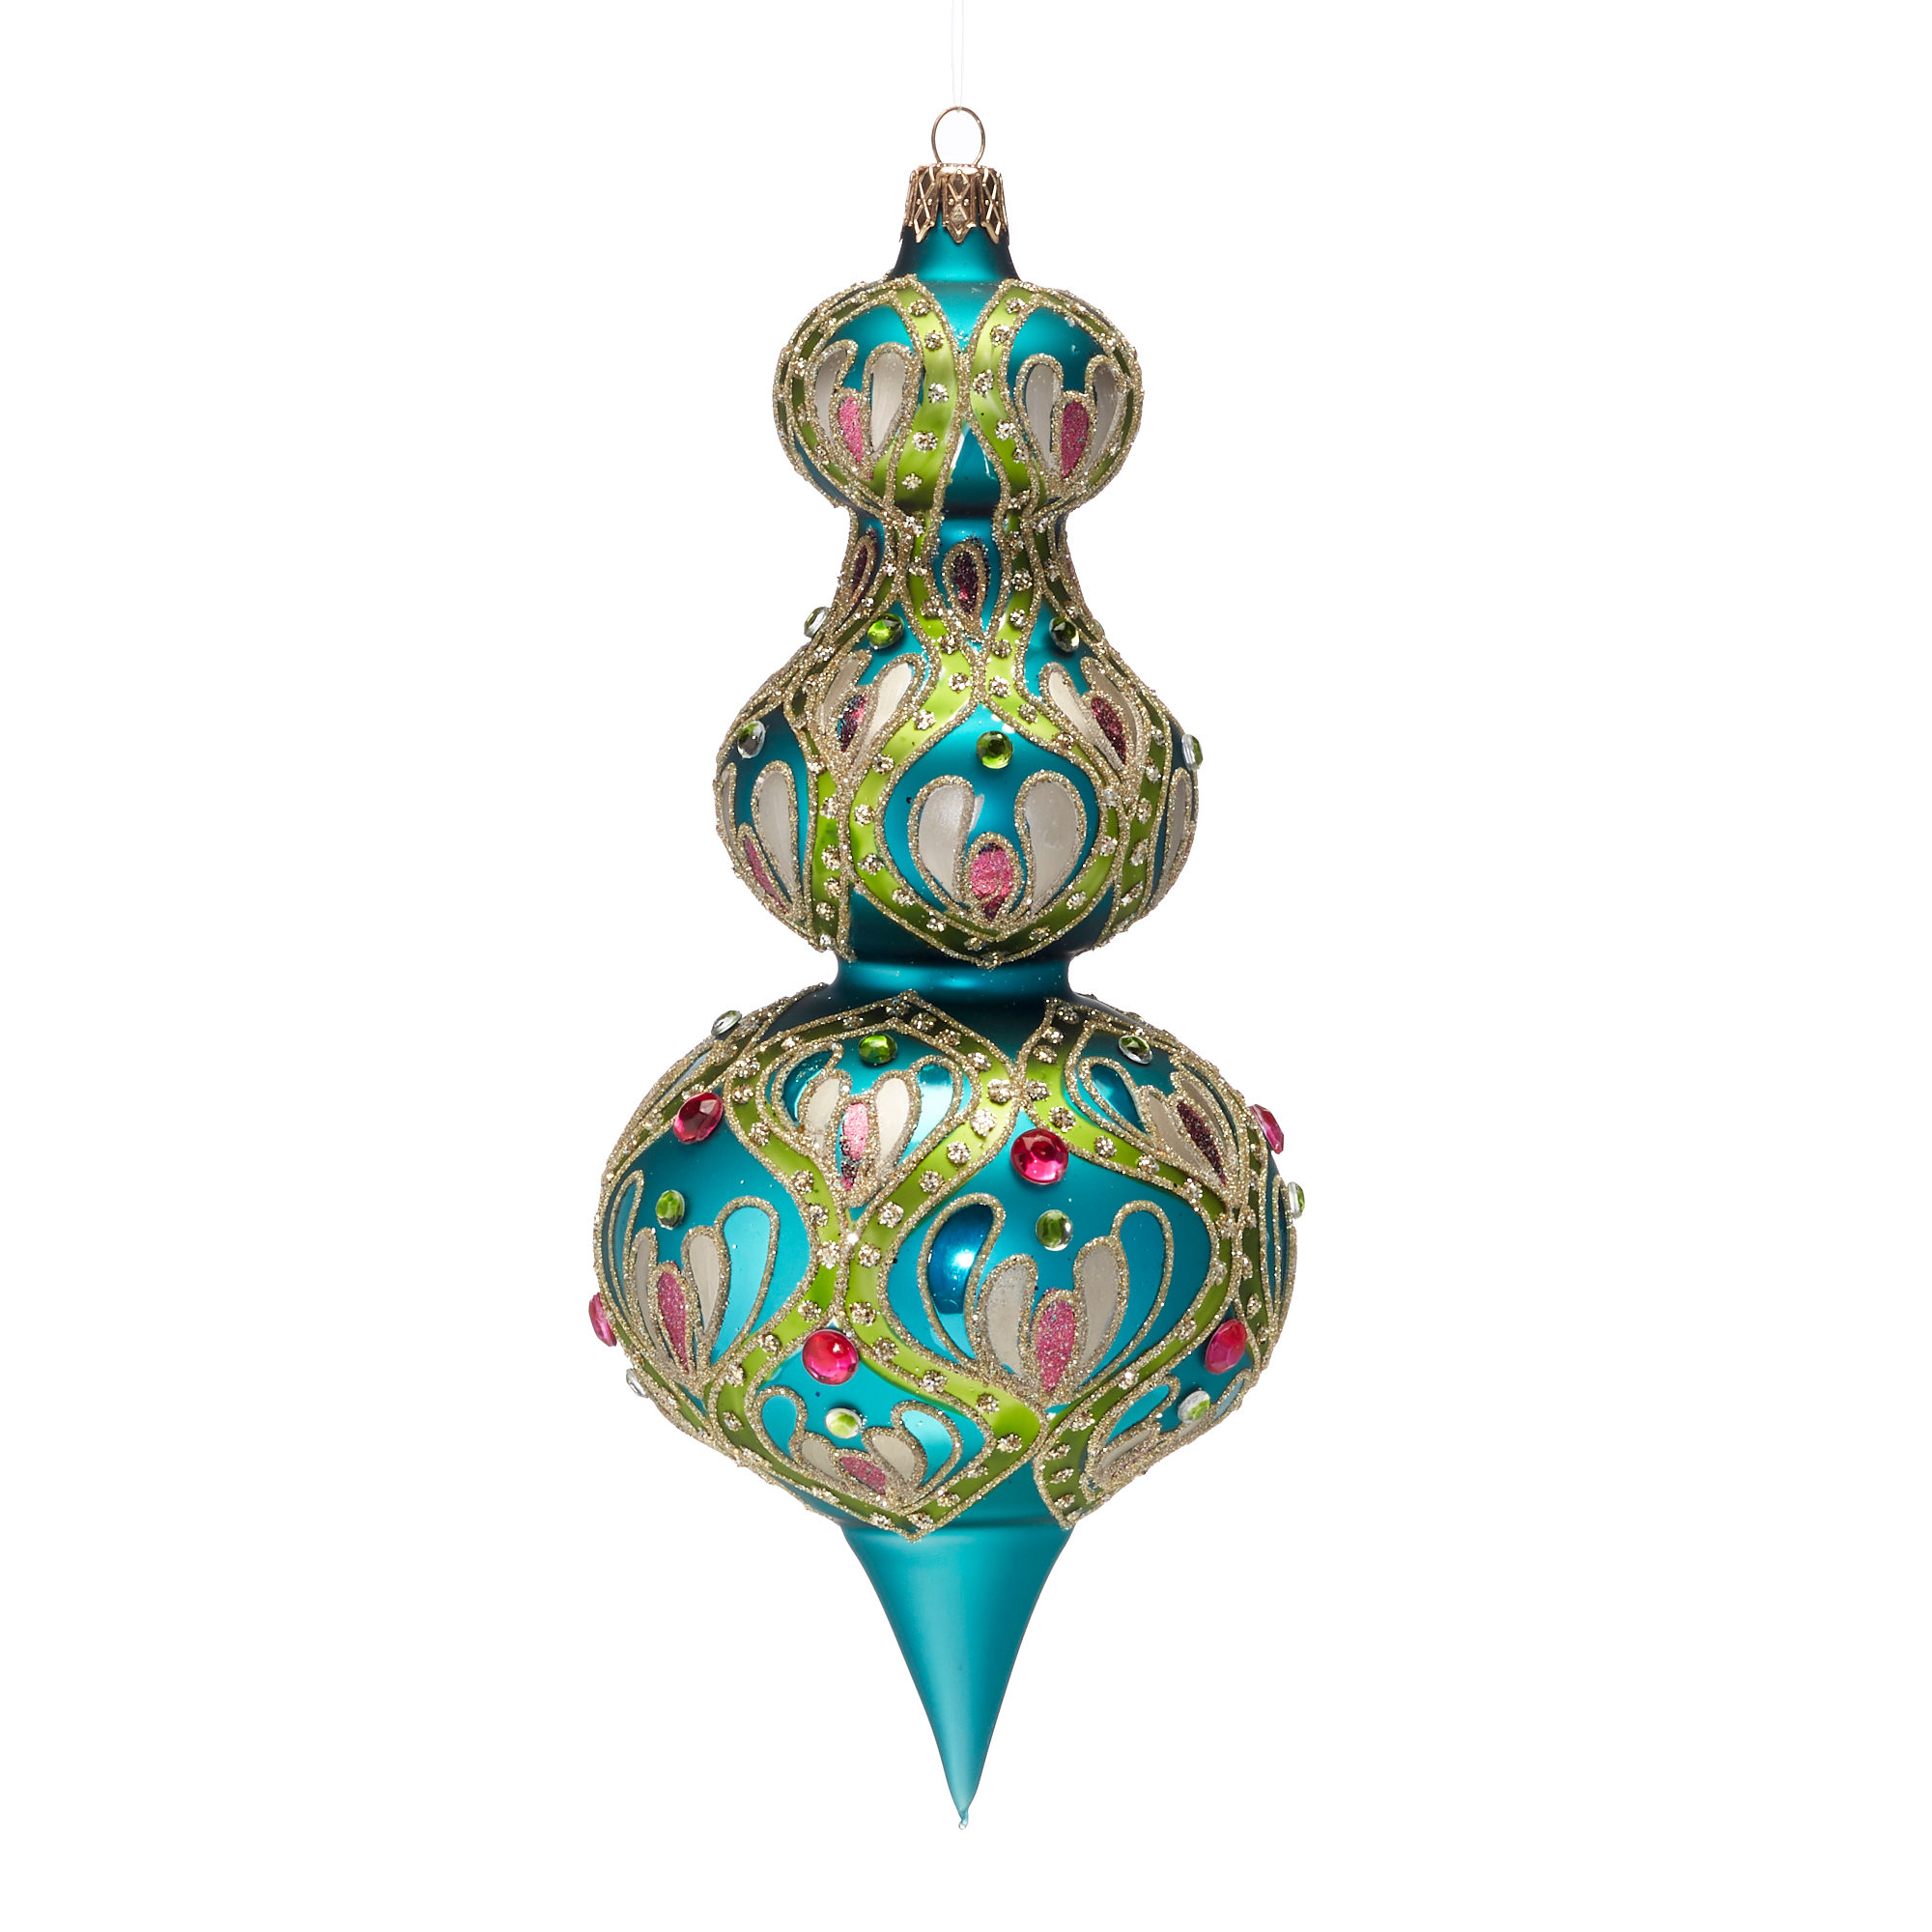 Jeweled Finial Christmas Ornament, Turquoise